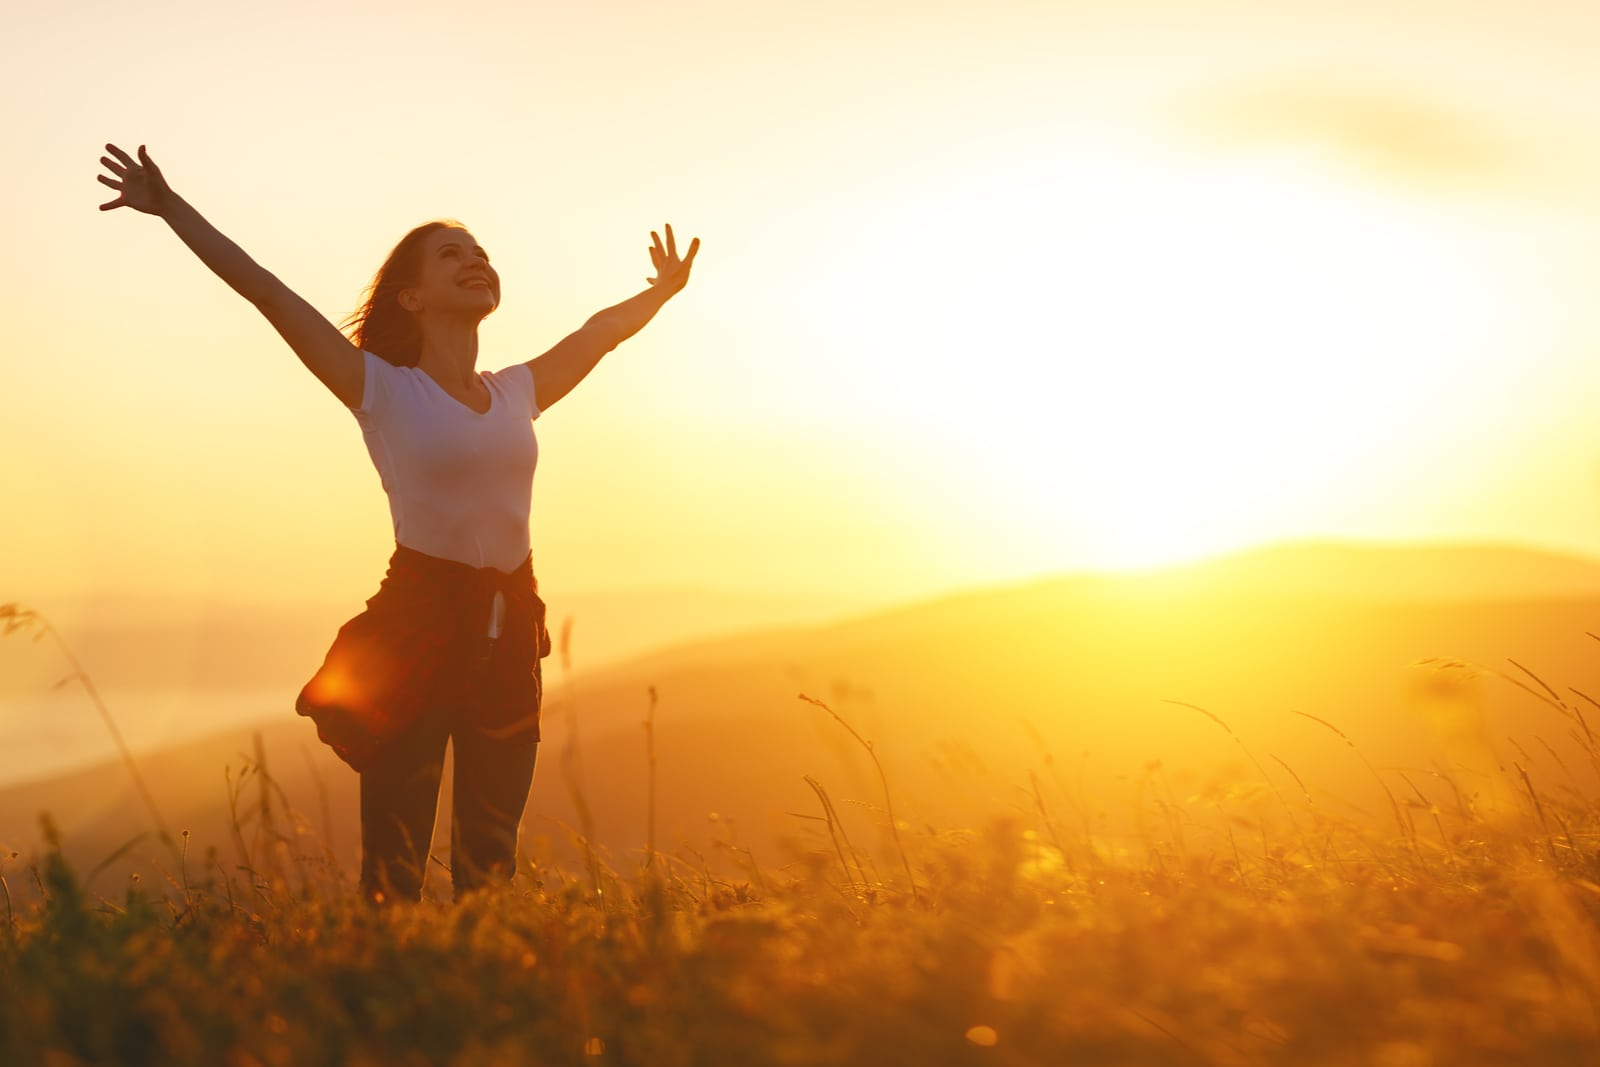 the woman stands with her arms outstretched